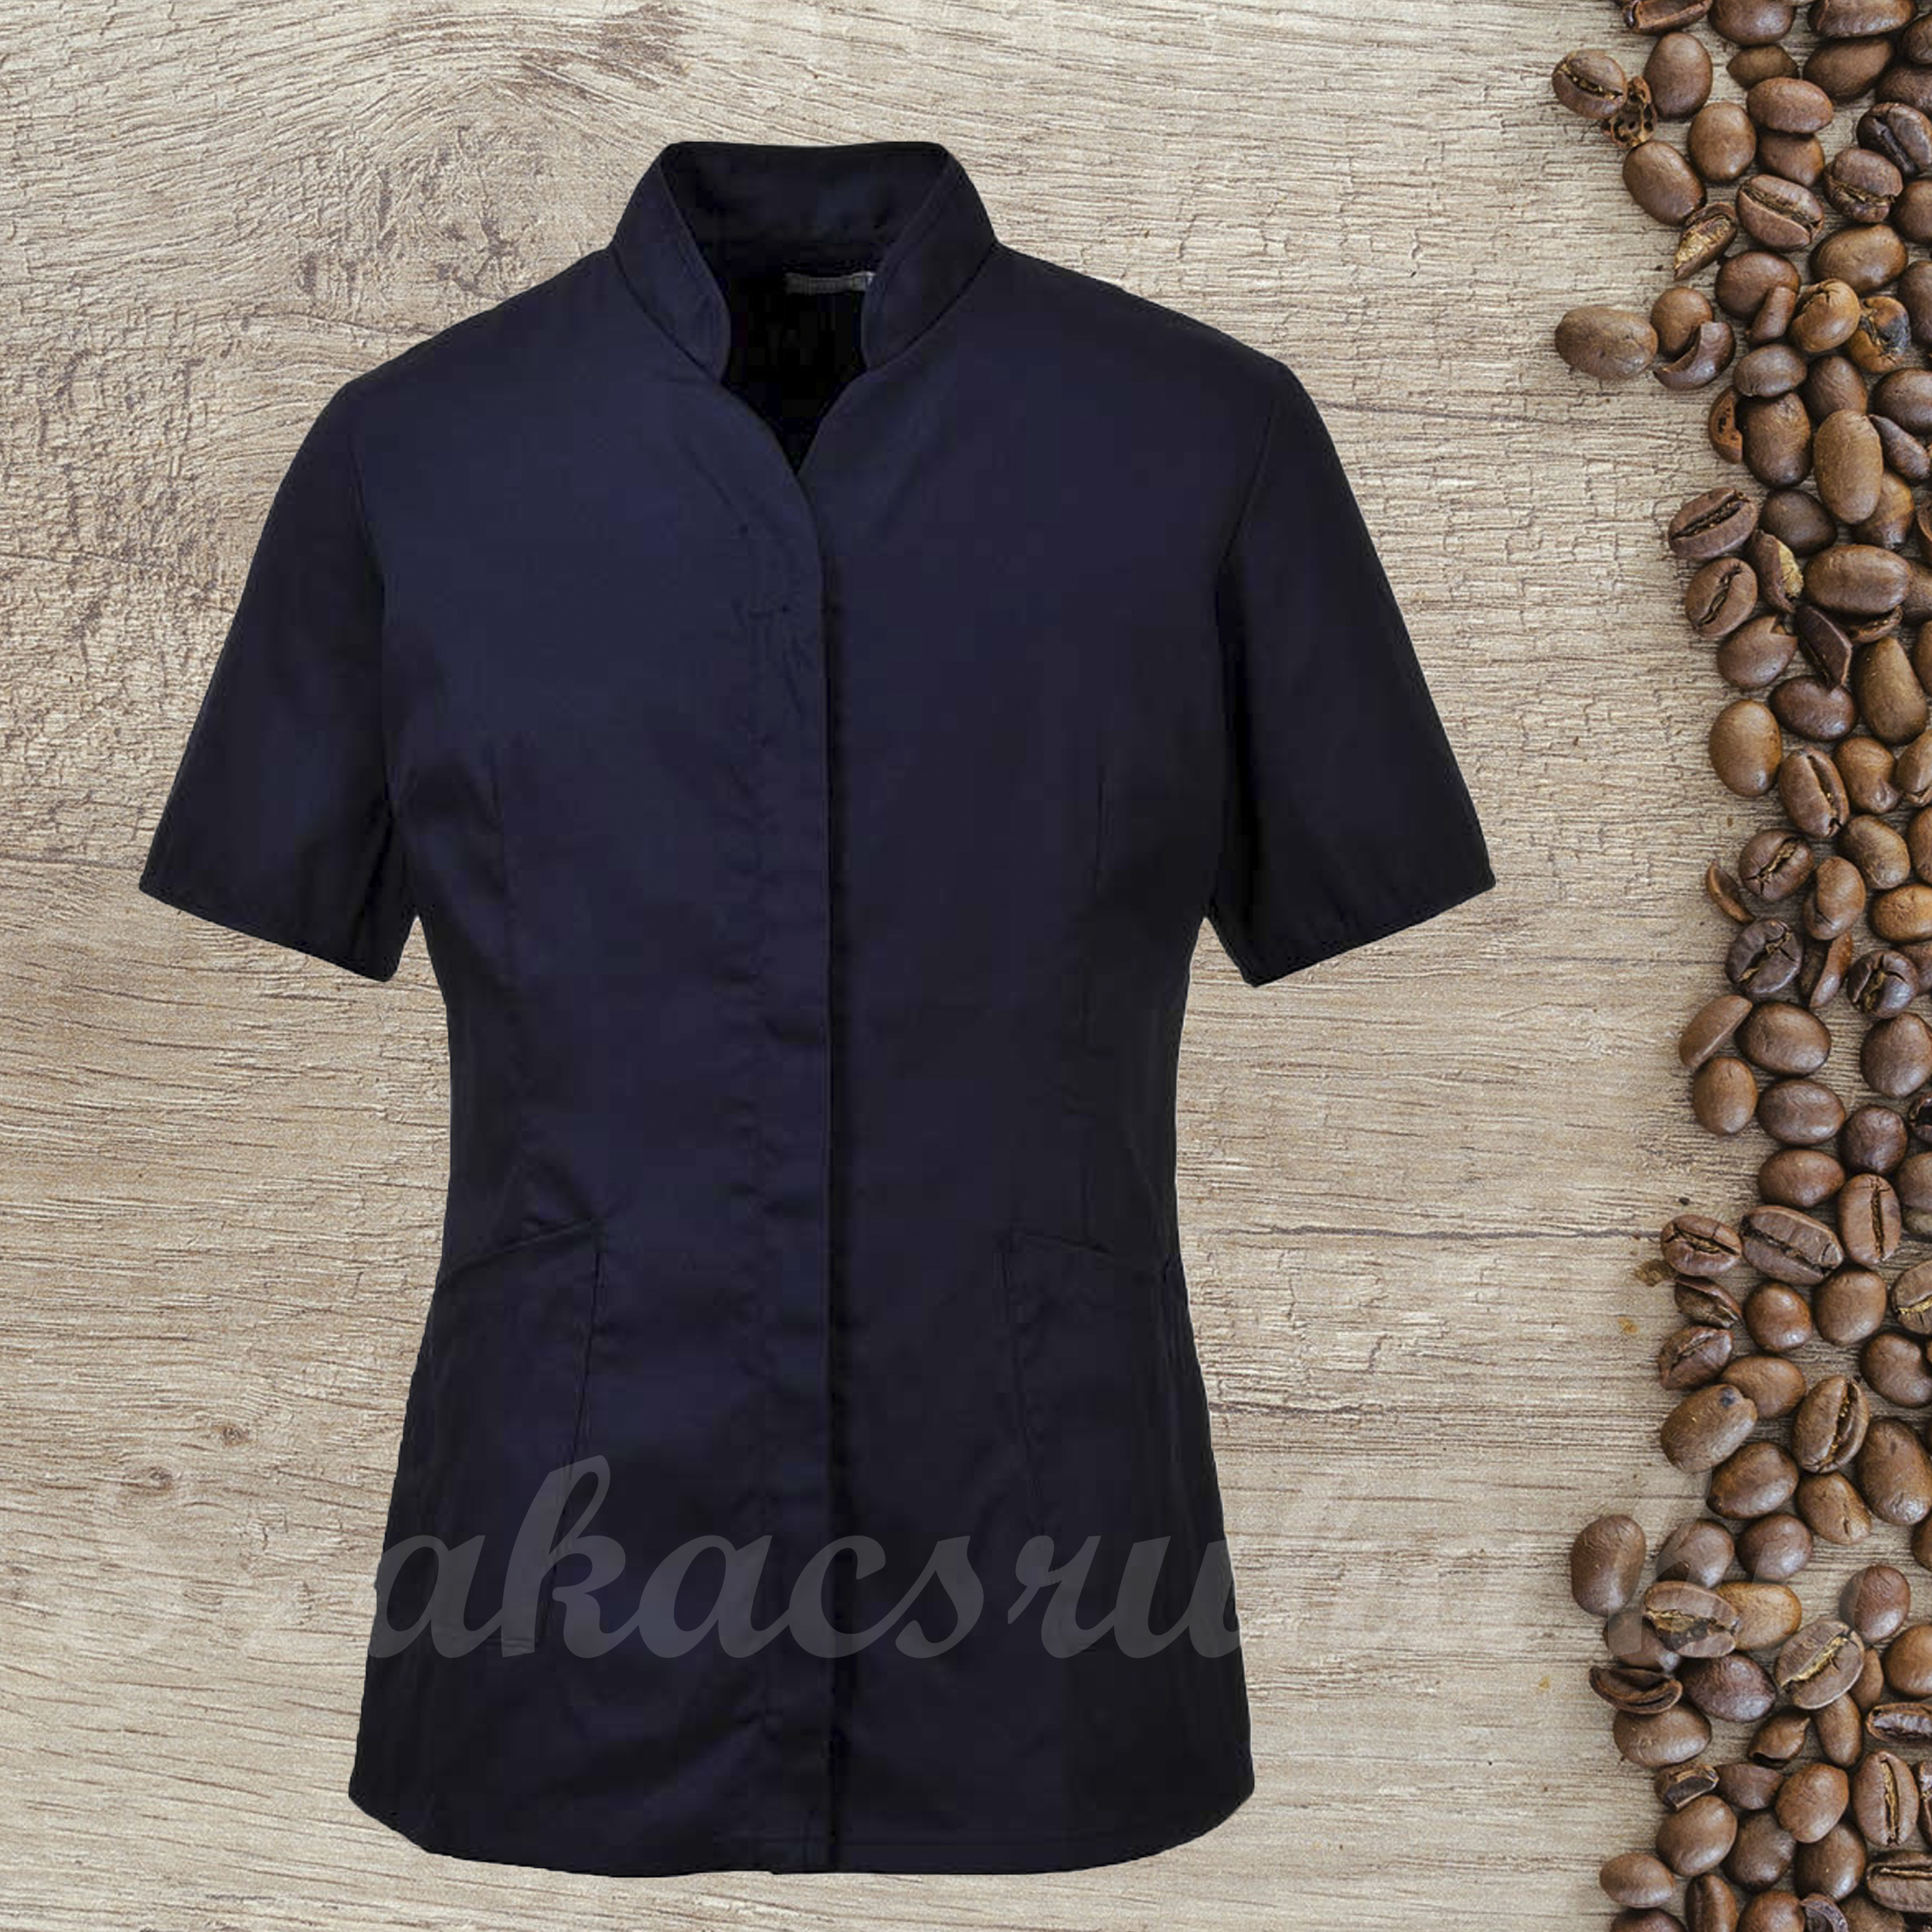 /upload/files/63/lw12navy-2-12872.jpg